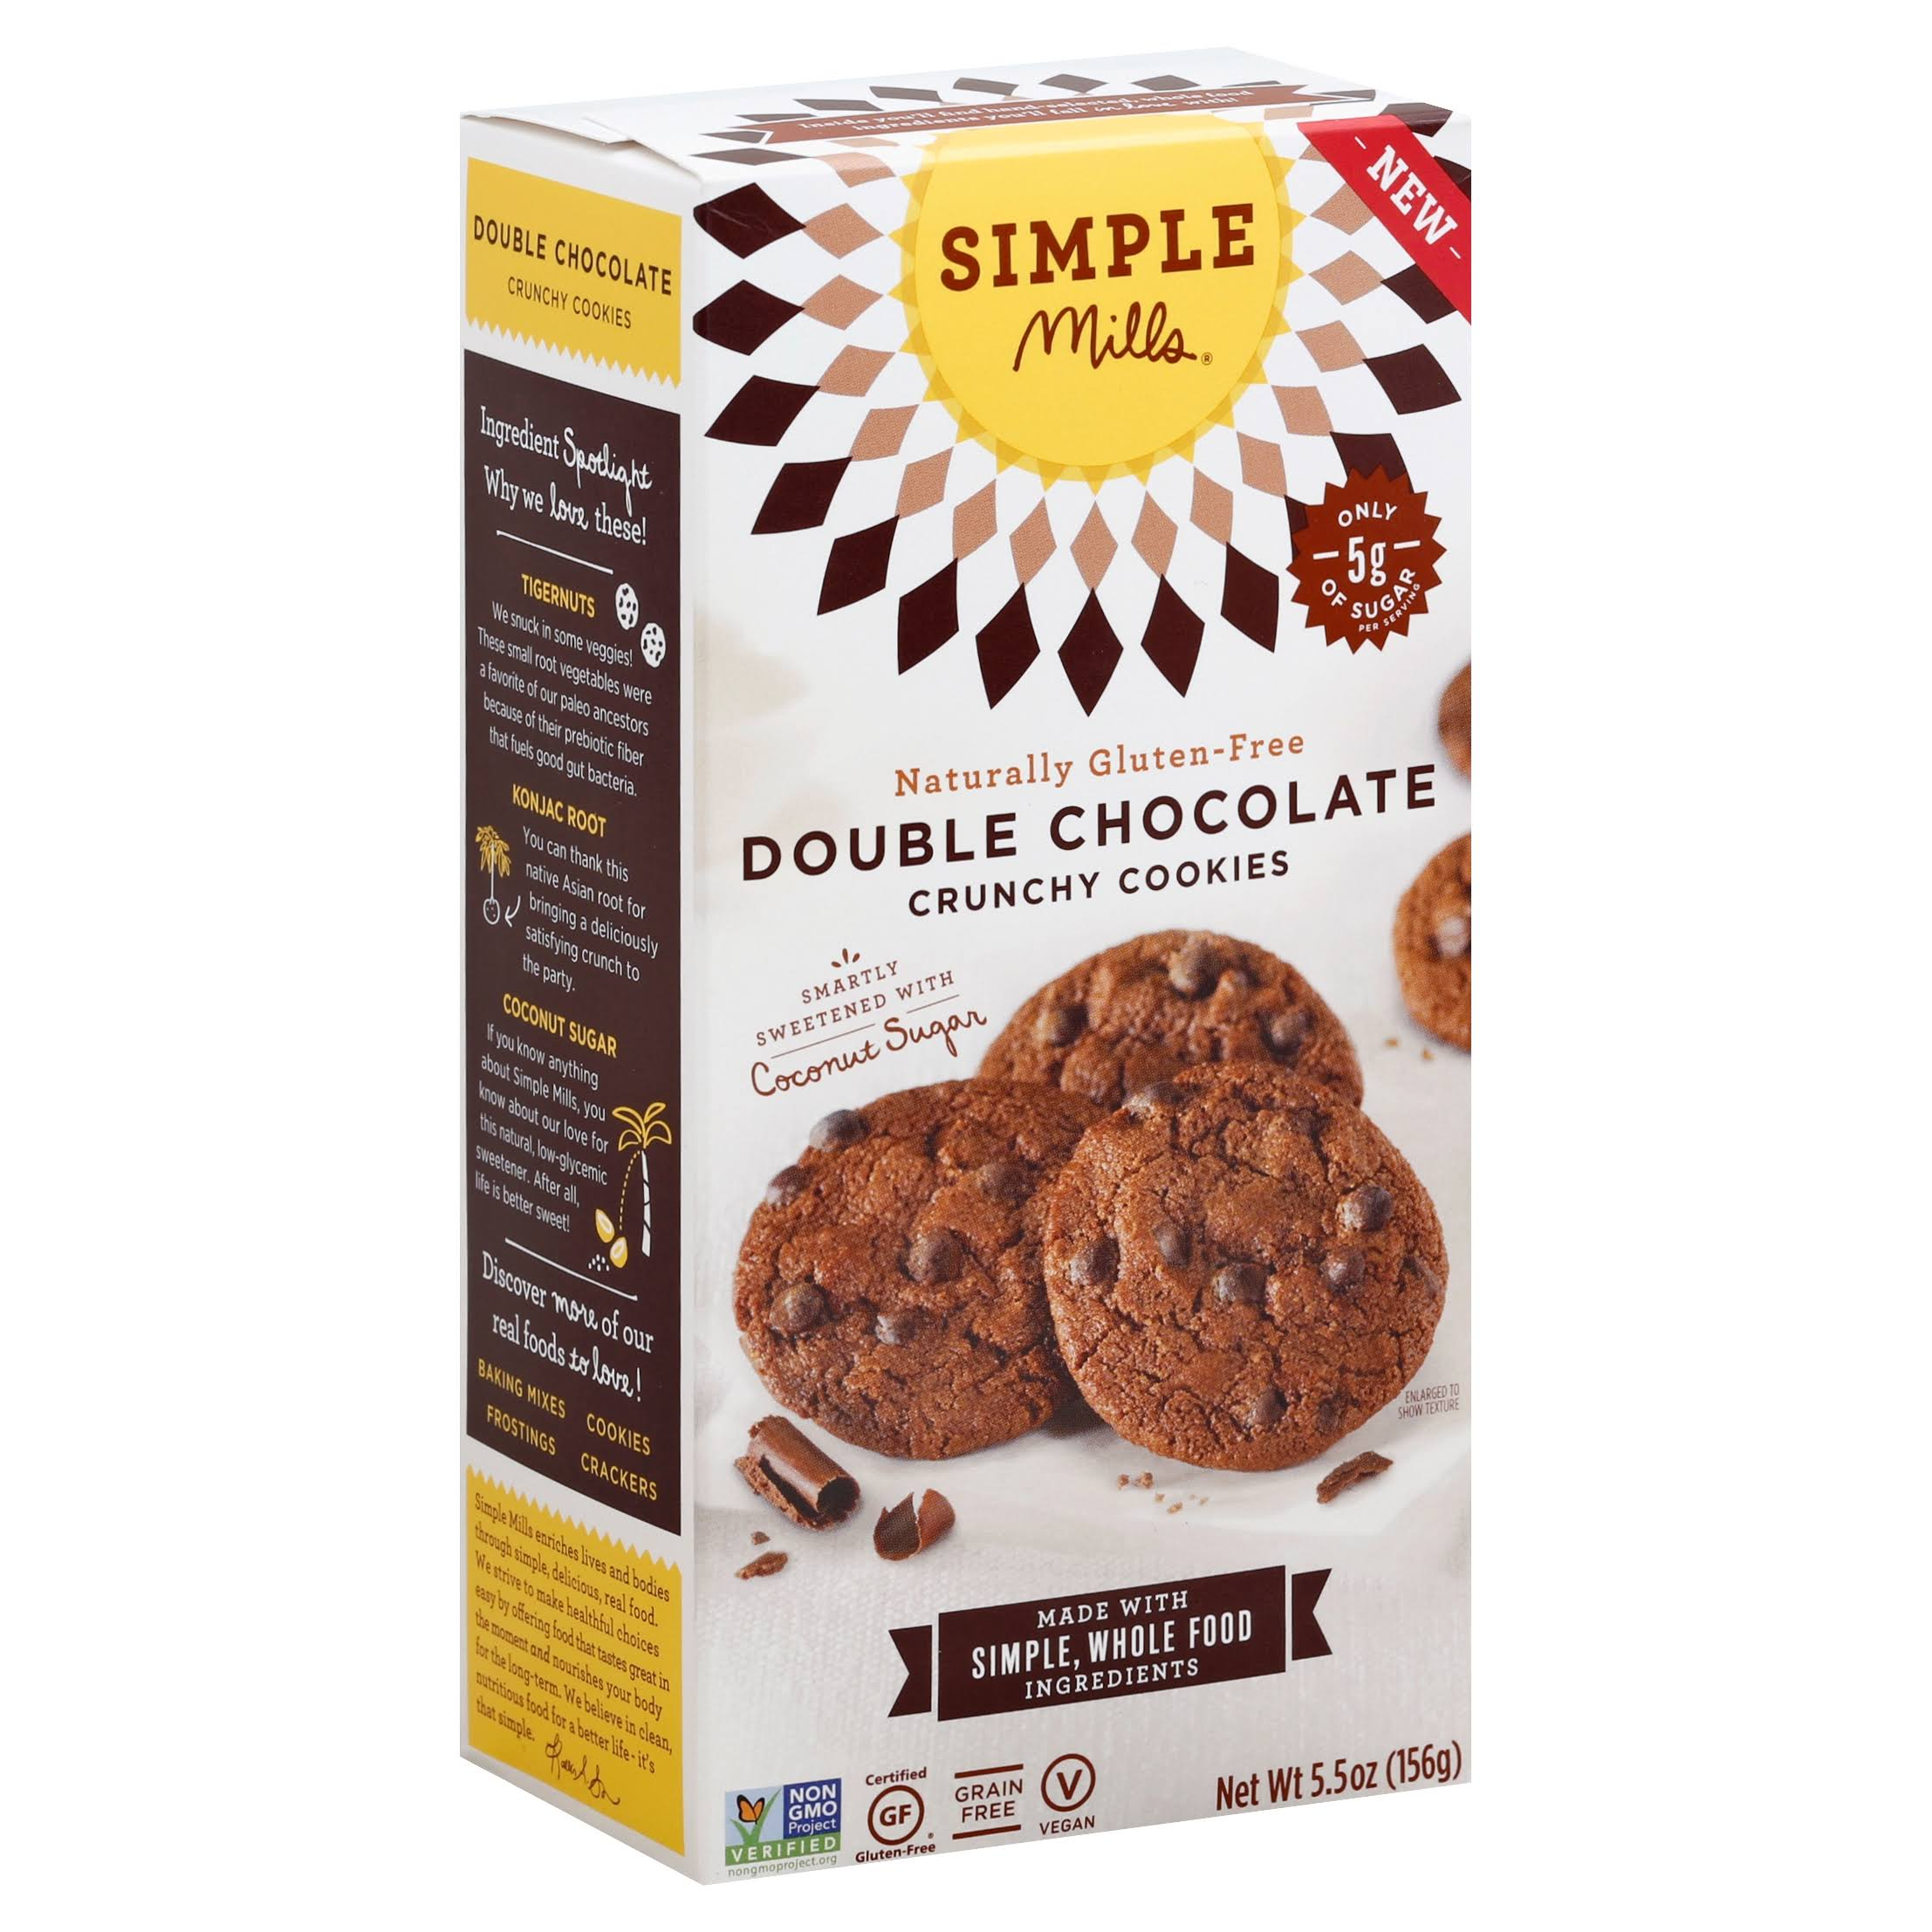 Simple Mills Naturally Gluten Crunchy Cookies - Double Chocolate, 5.5oz